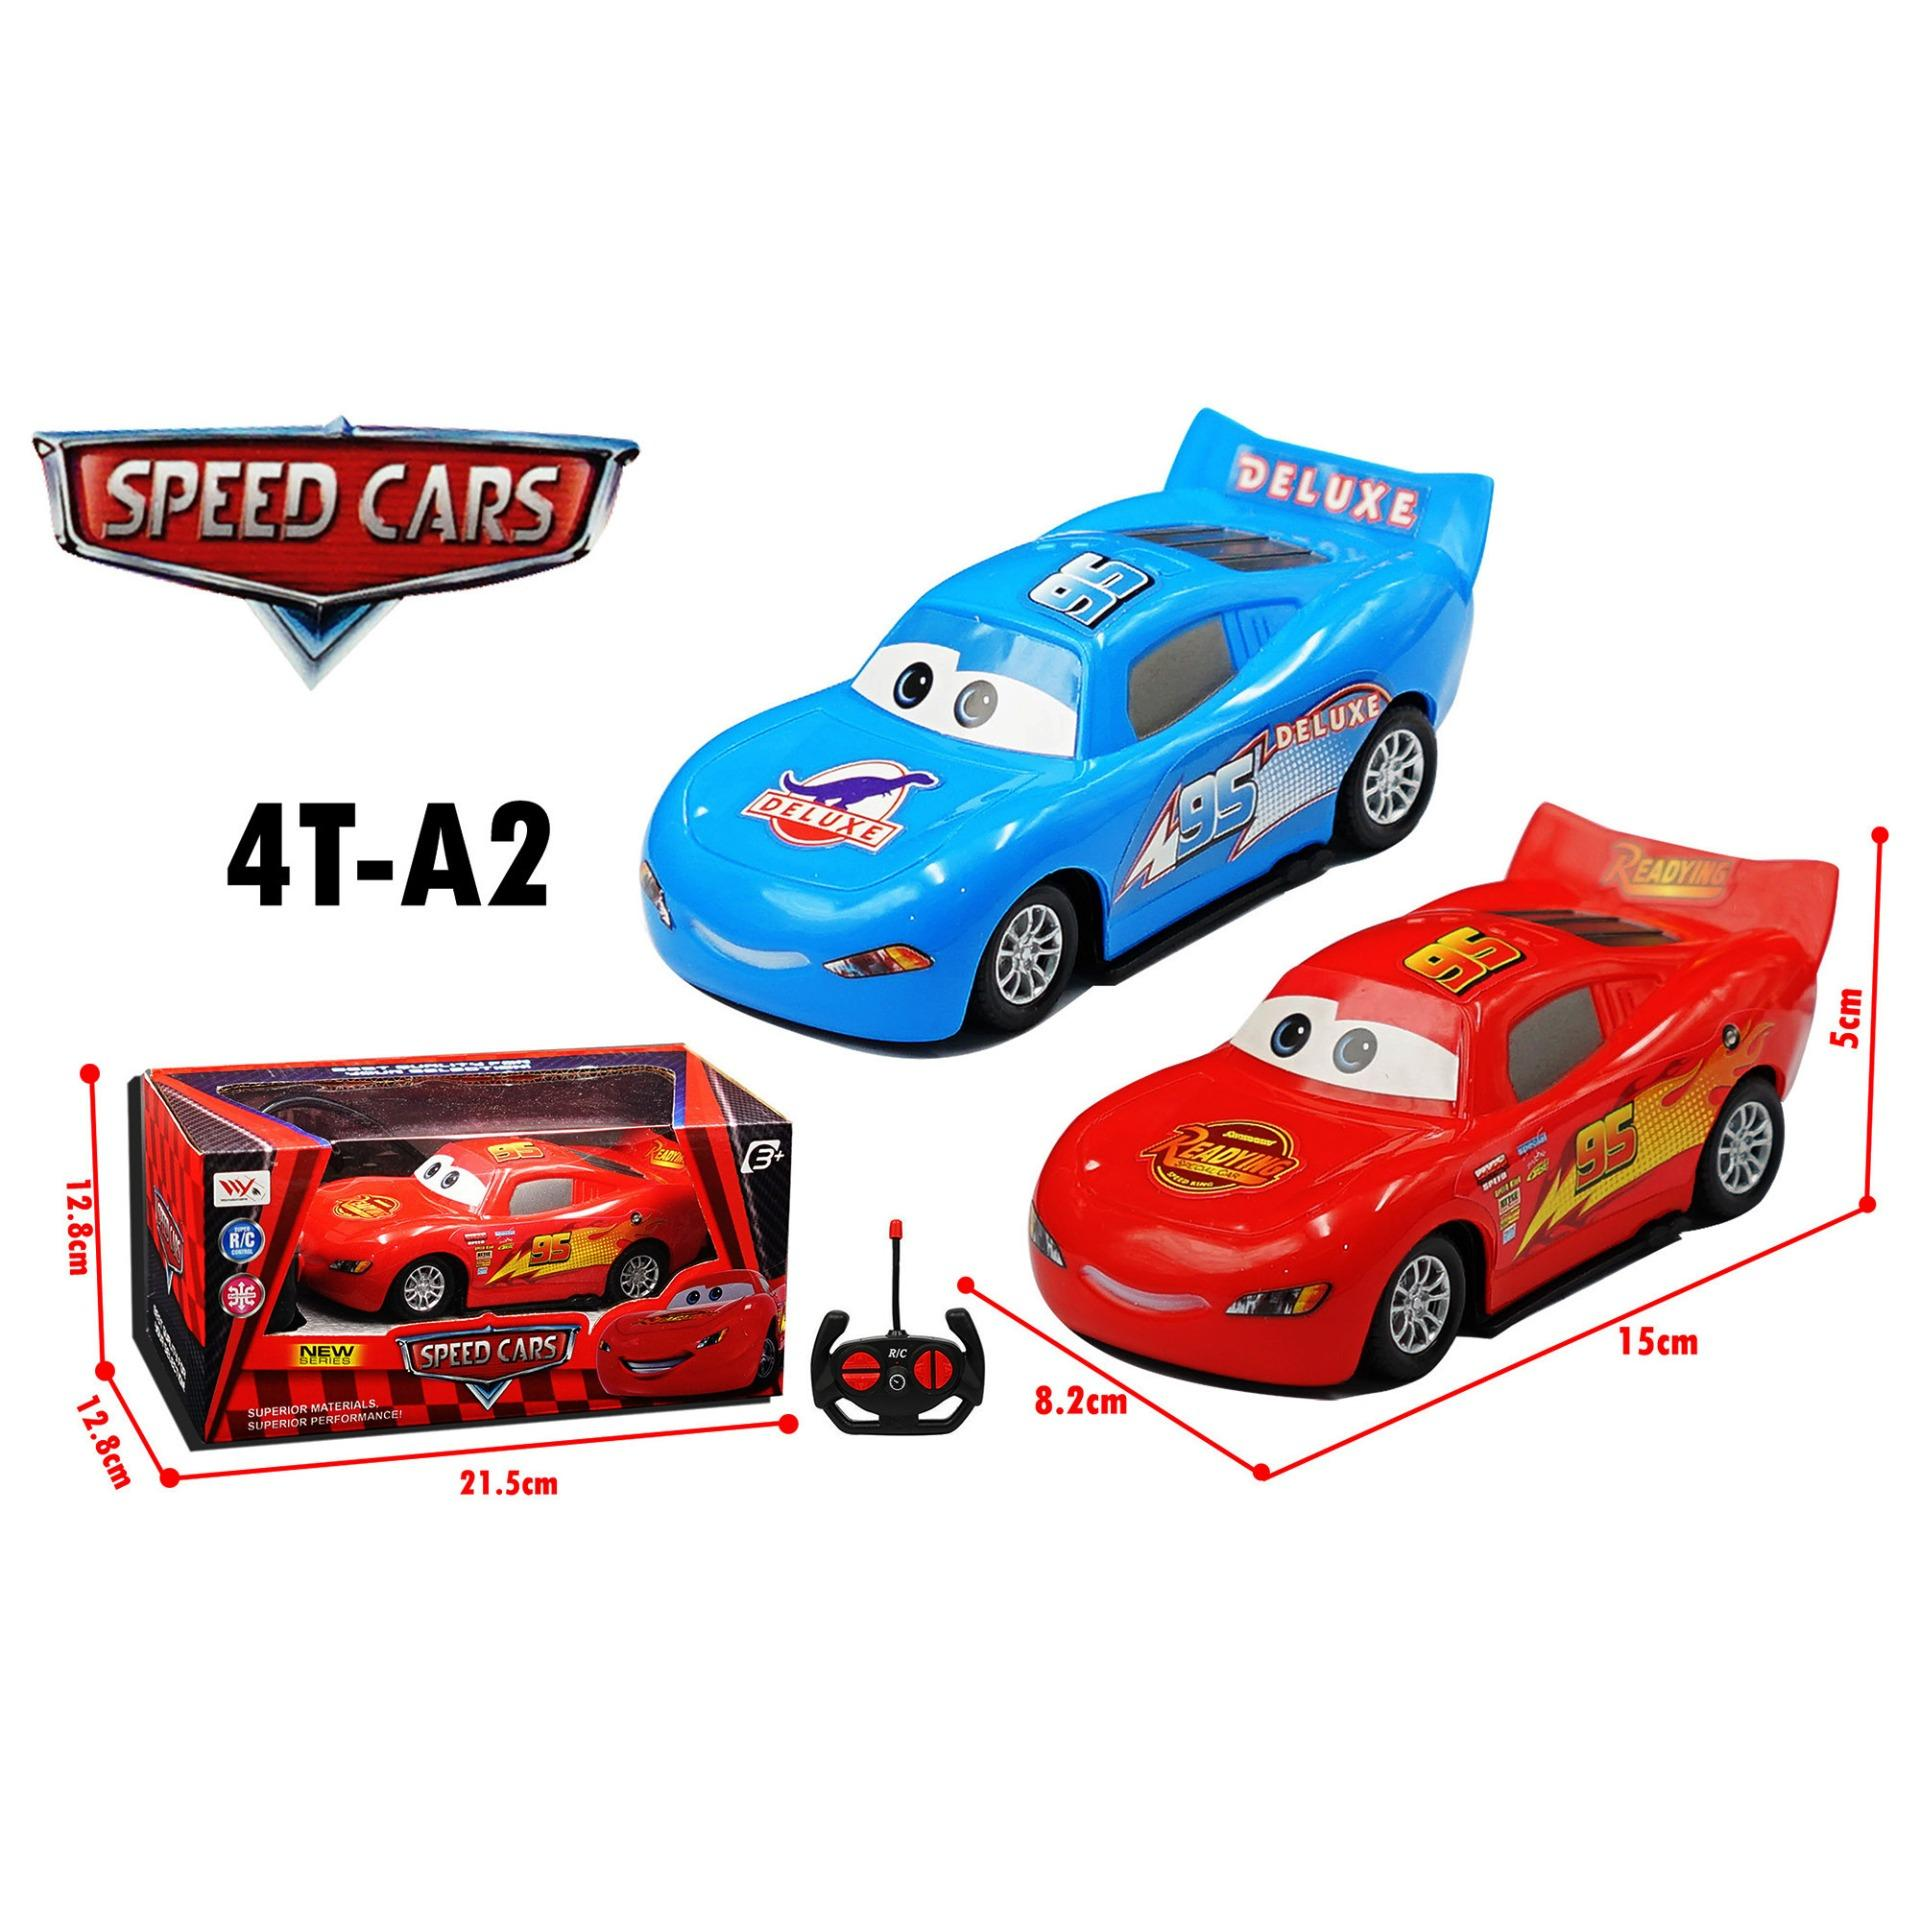 RKJ Mainan Anak RC Mobil Remot Speed Cars with Lights  4T-A2 - Warna Random